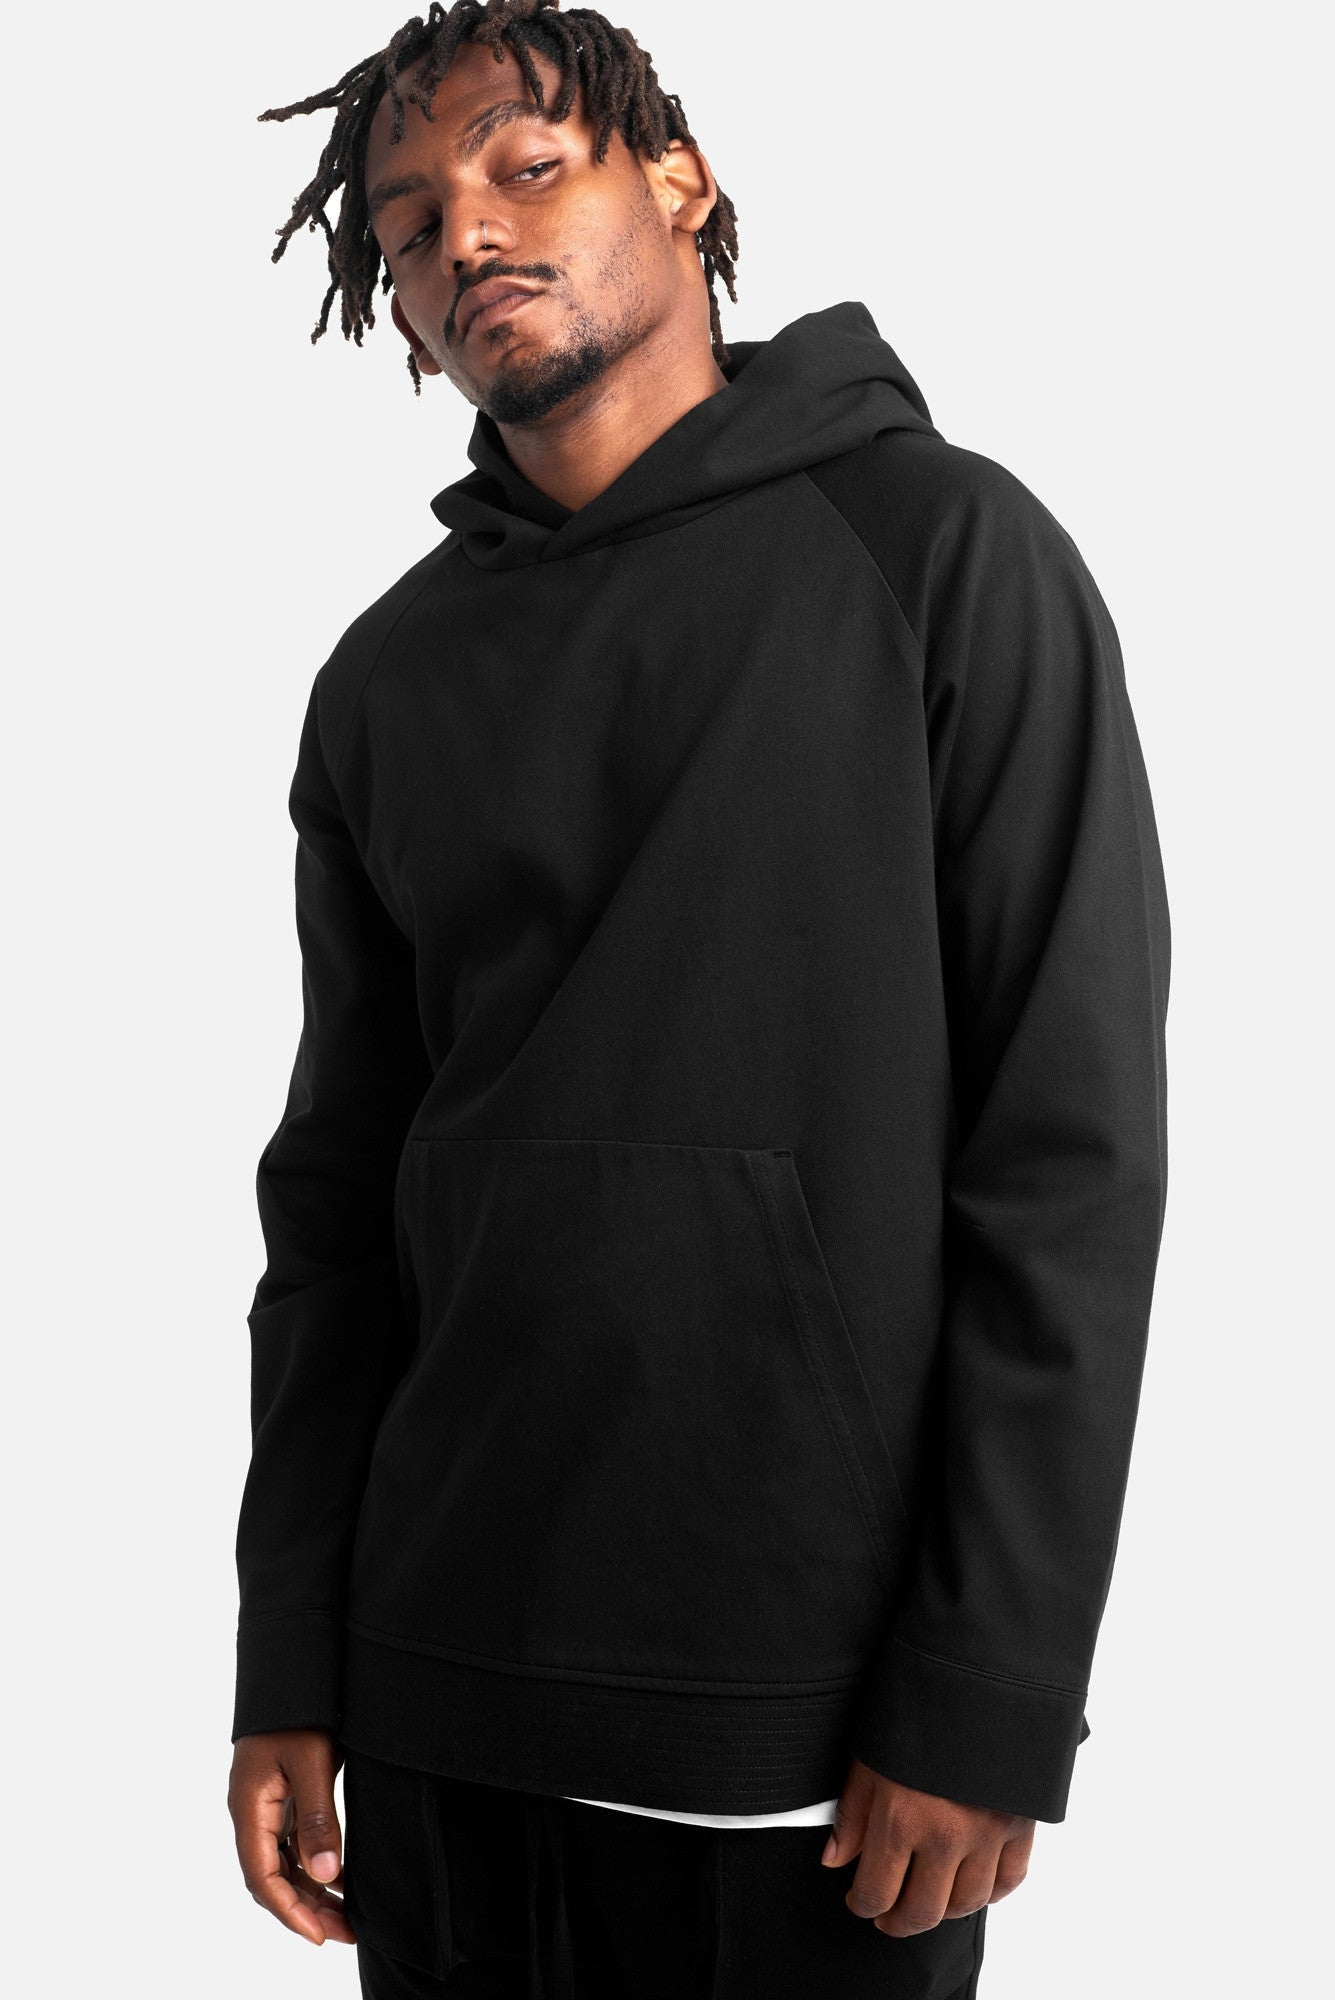 haywood article 6 embroidered anorak - scrt society